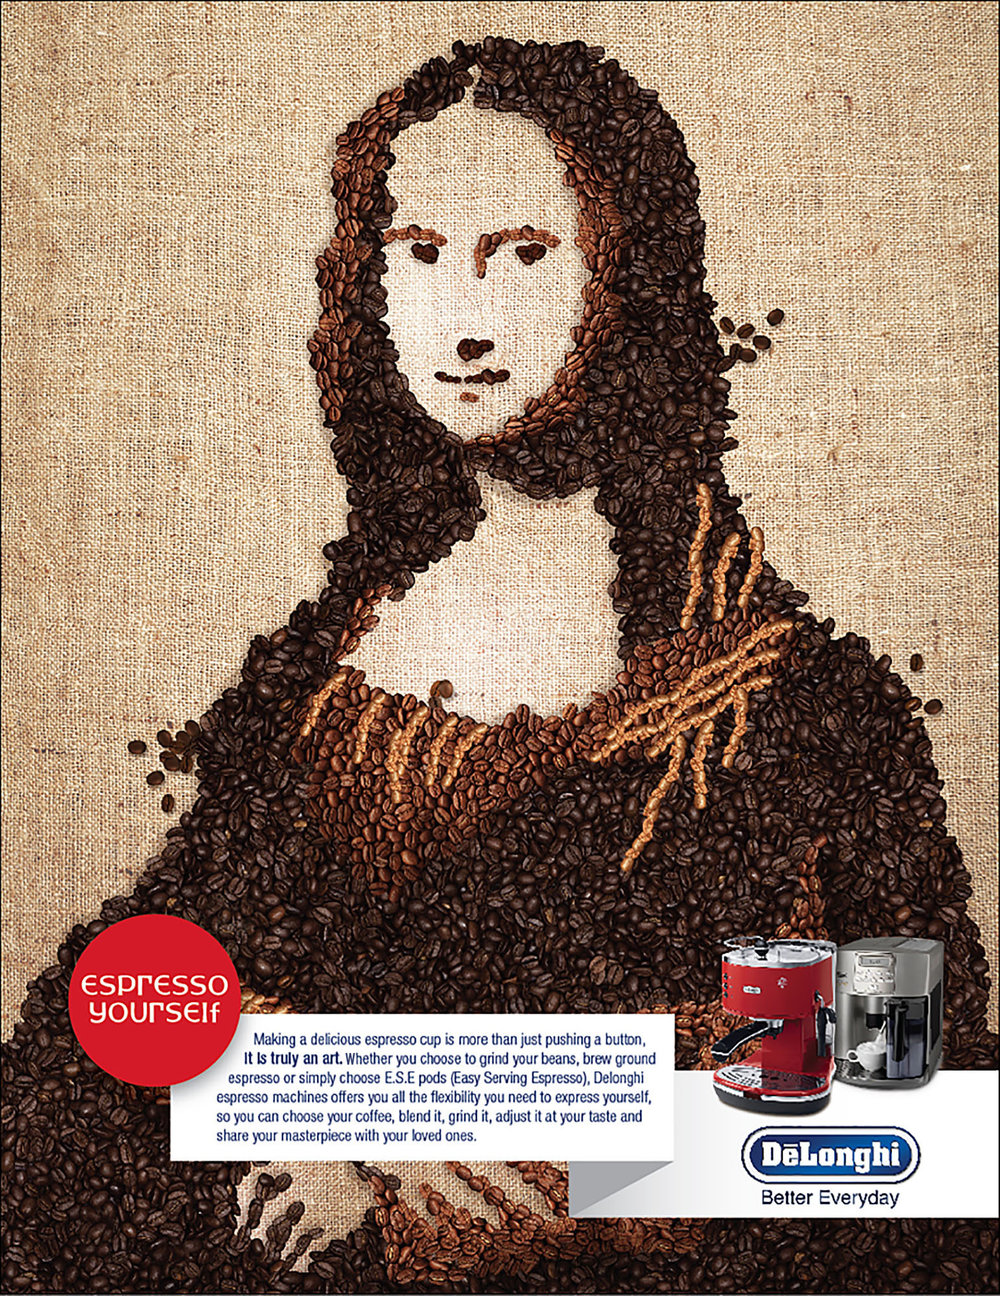 Delonghi 'Mona Lisa' Press Ad